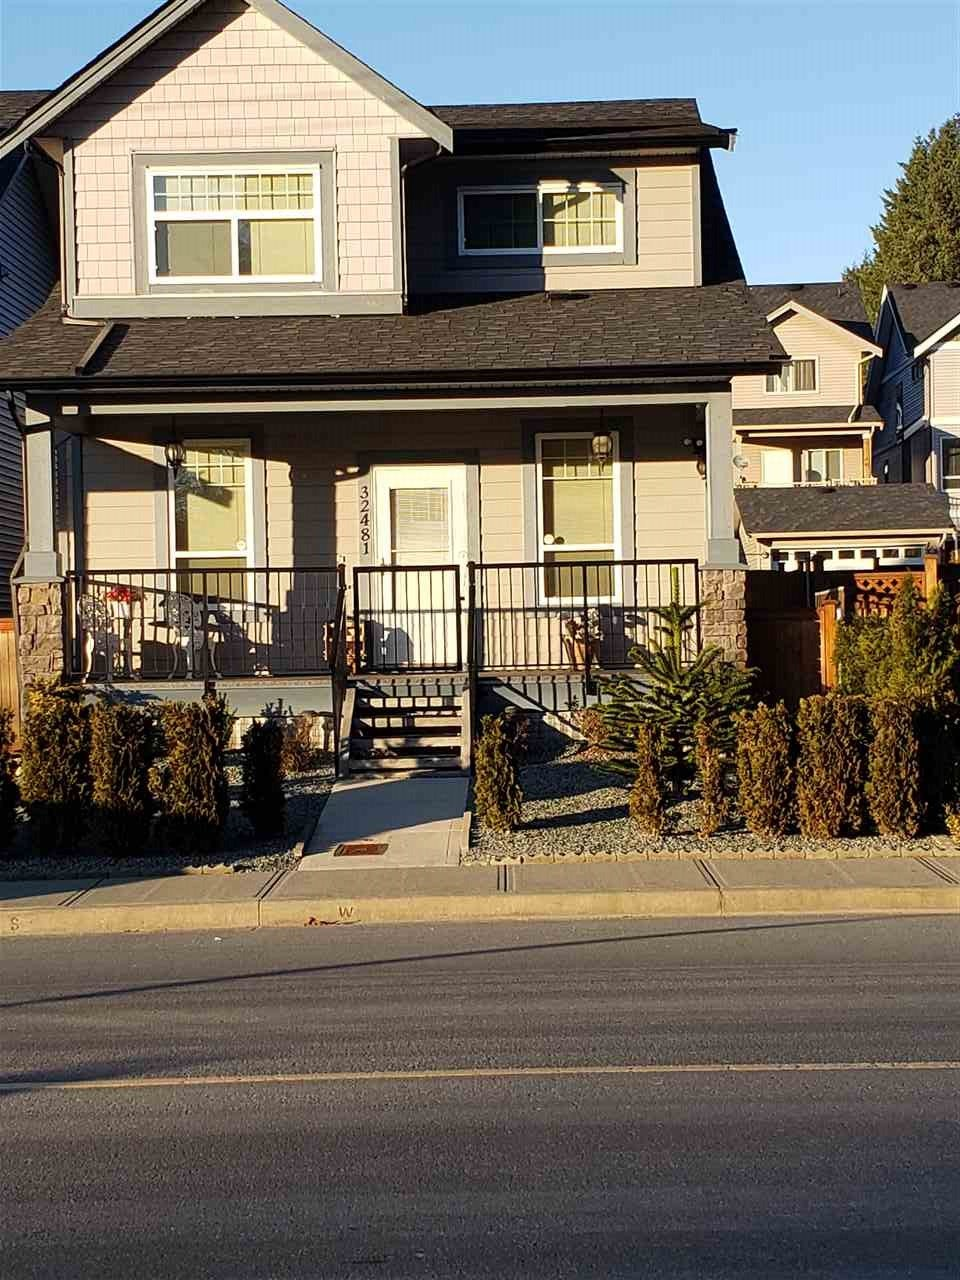 32481 7TH AVENUE - Mission BC House/Single Family for sale, 3 Bedrooms (R2531506)